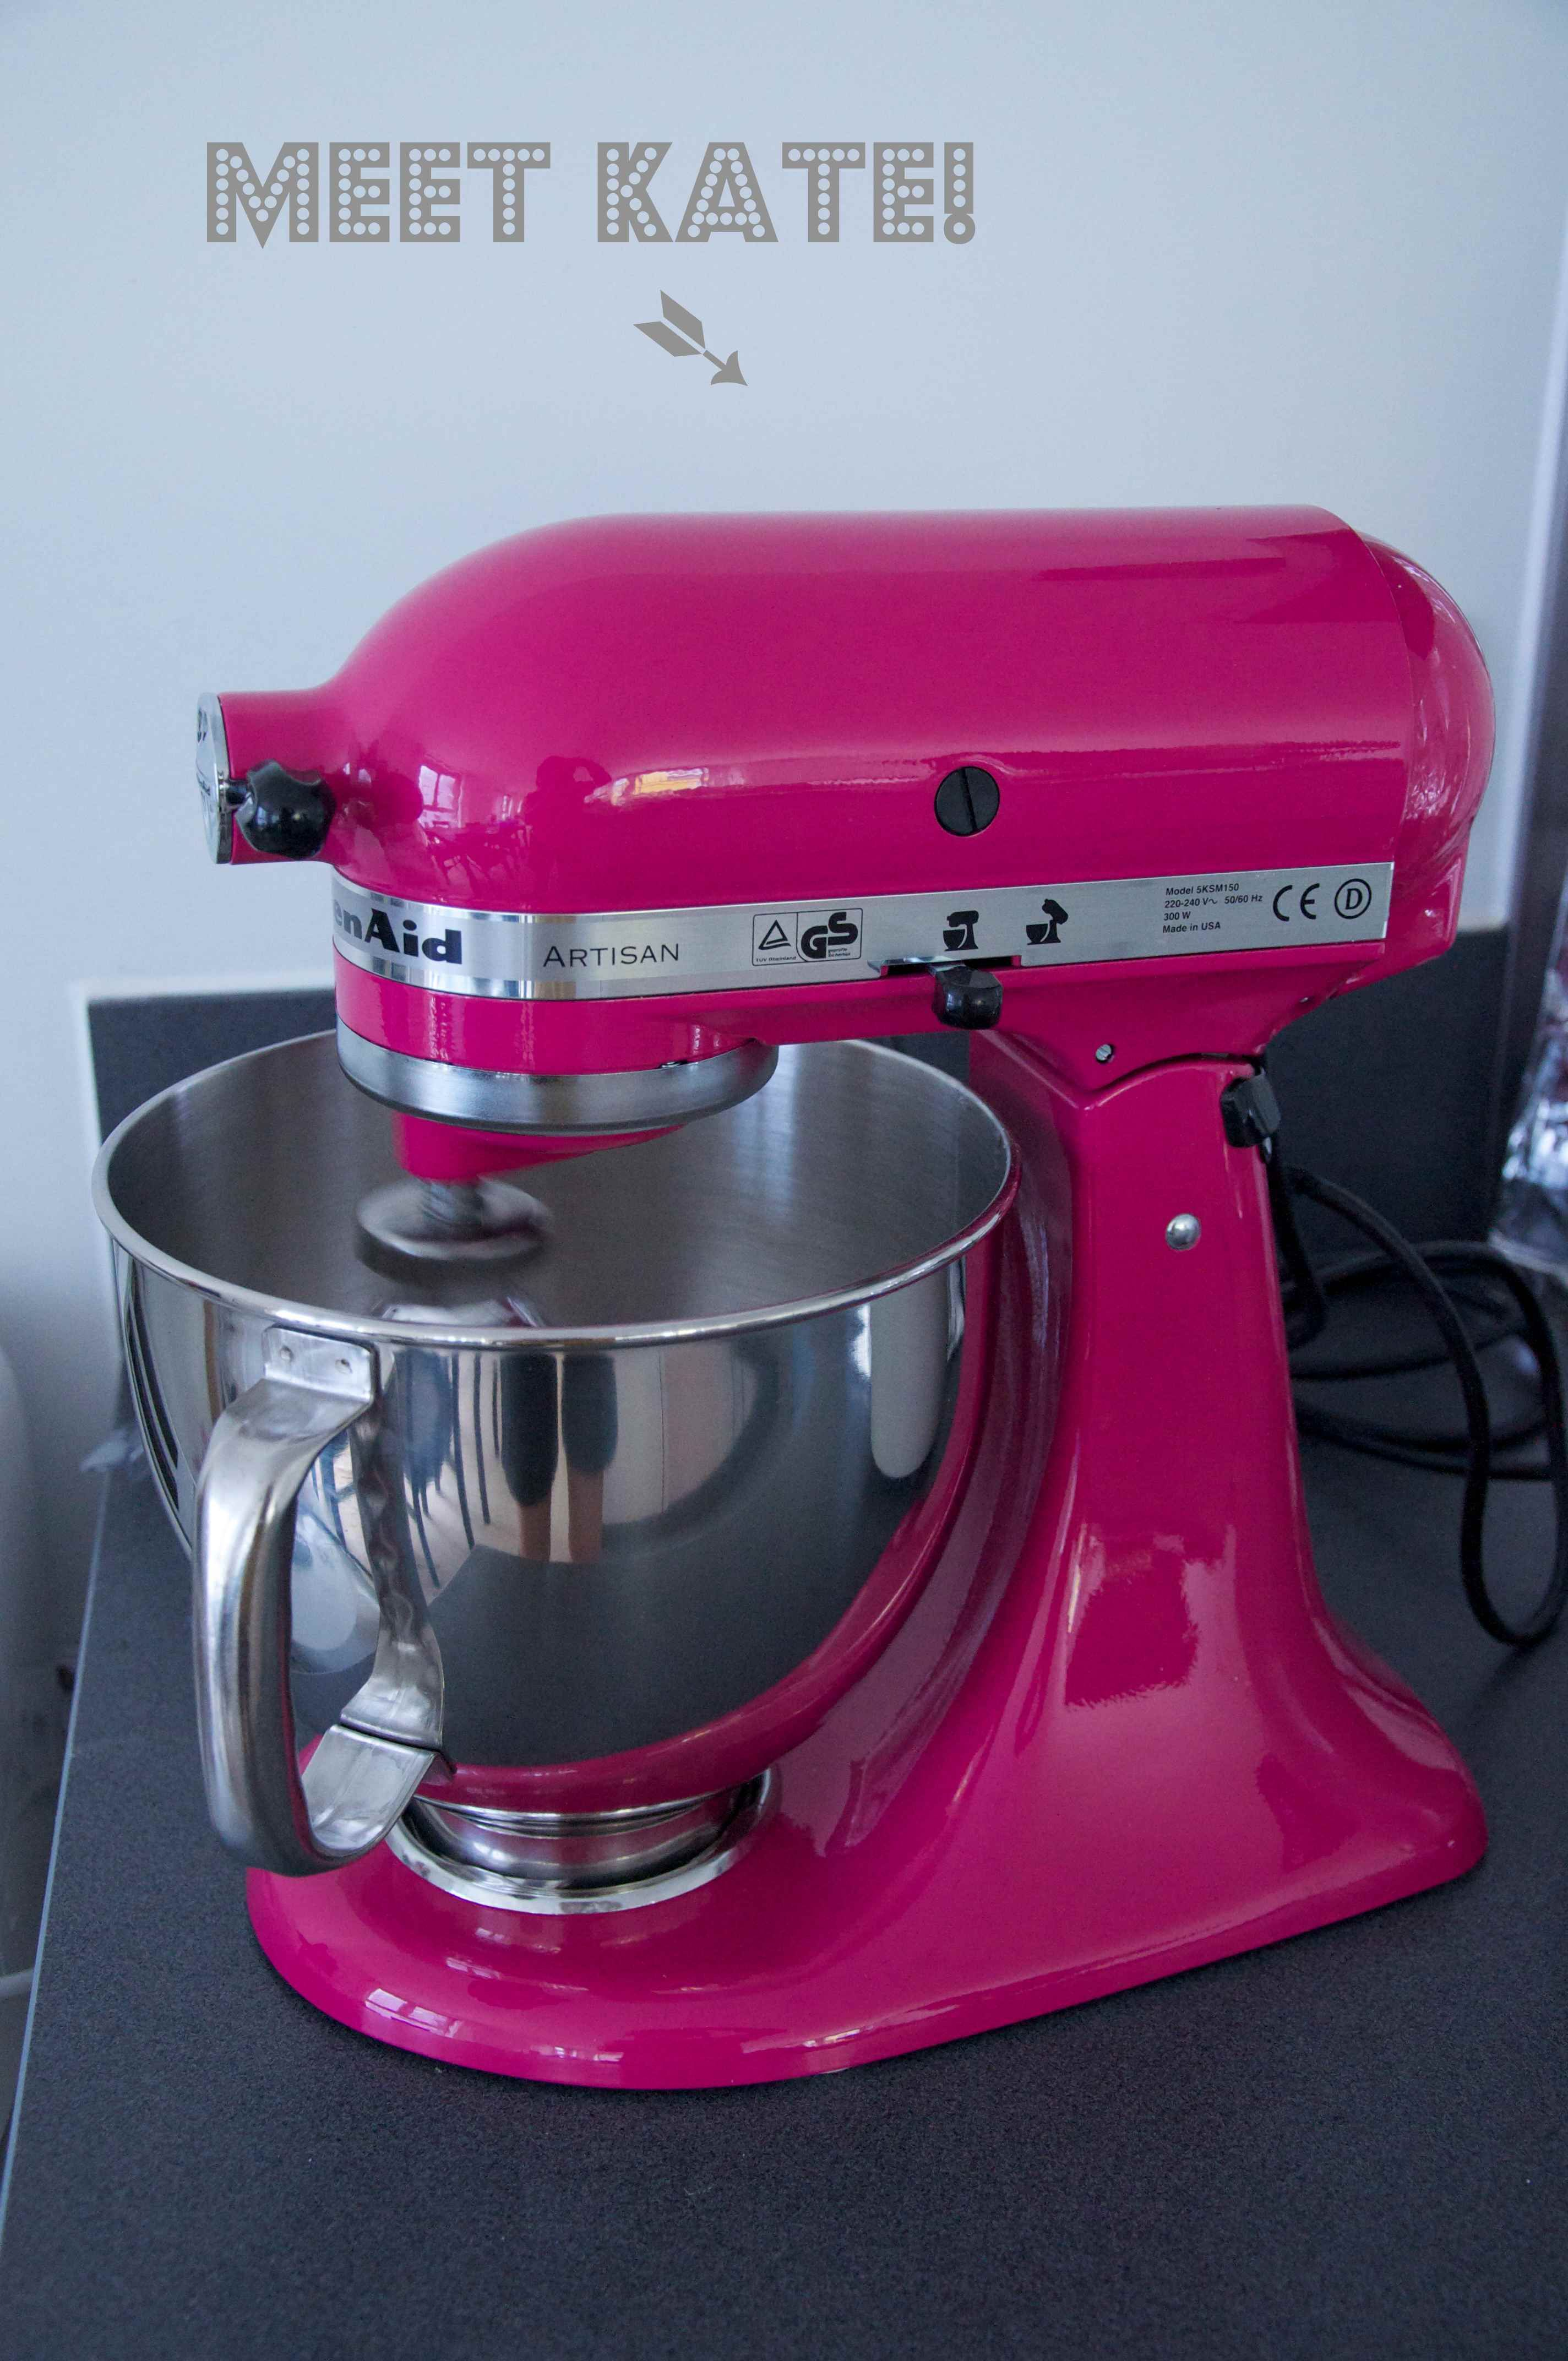 Hot Pink Cranberry Kitchenaid This Or The Mint Green One Is On My Christmas List